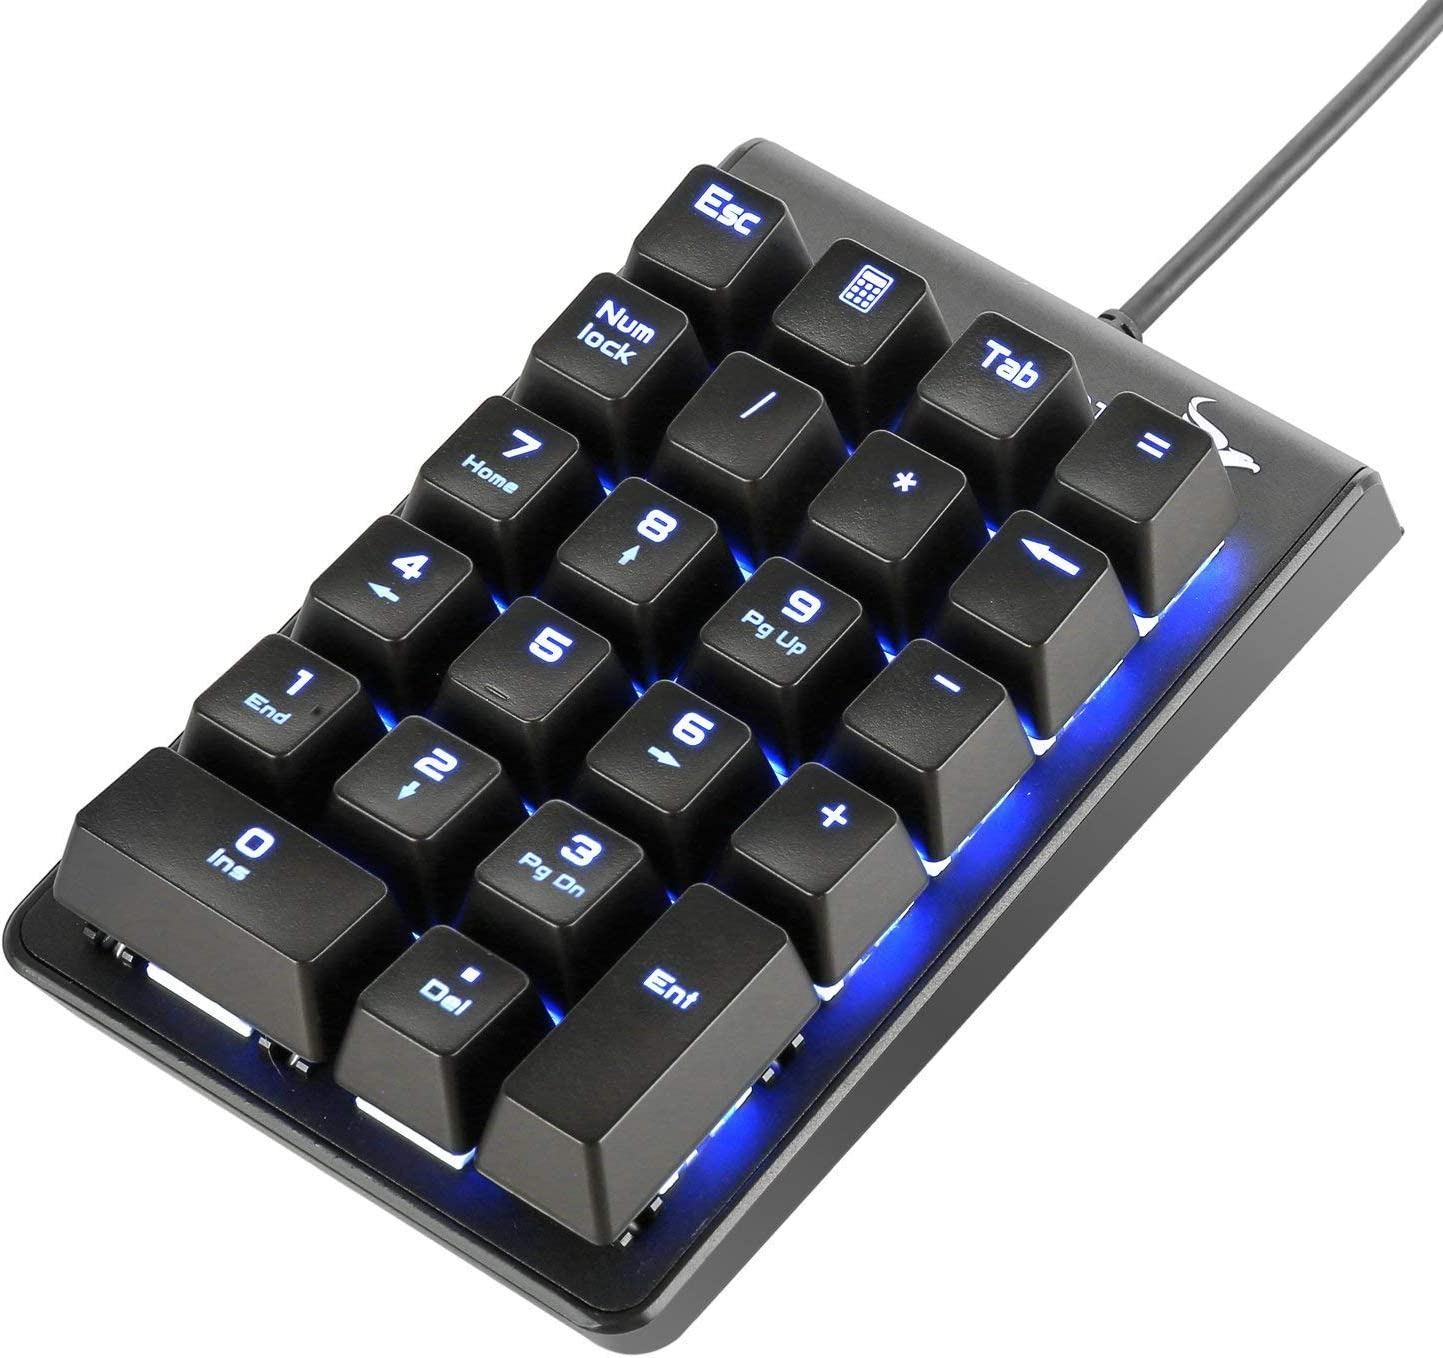 Number Pad, ROTTAY Mechanical USB Wired Numeric Keypad with Blue LED Backlit 22-Key Numpad for Laptop Desktop Computer PC - Black (Blue switches)